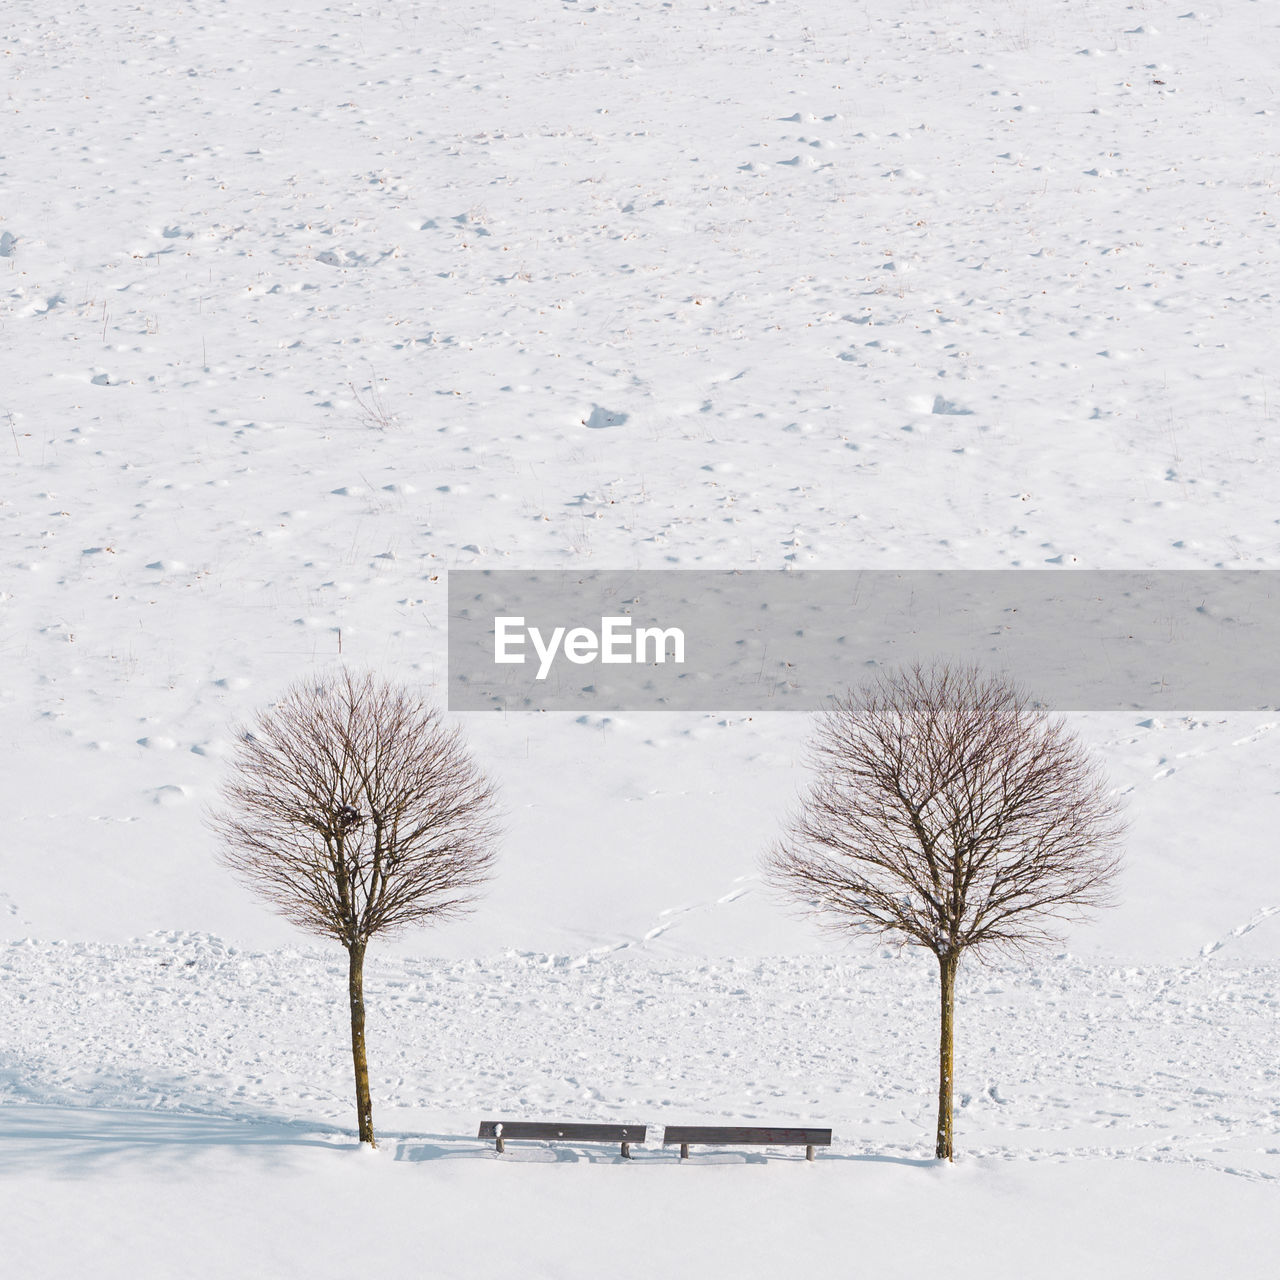 snow, winter, cold temperature, weather, nature, frozen, beauty in nature, bare tree, tranquil scene, tranquility, tree, no people, outdoors, scenics, day, landscape, branch